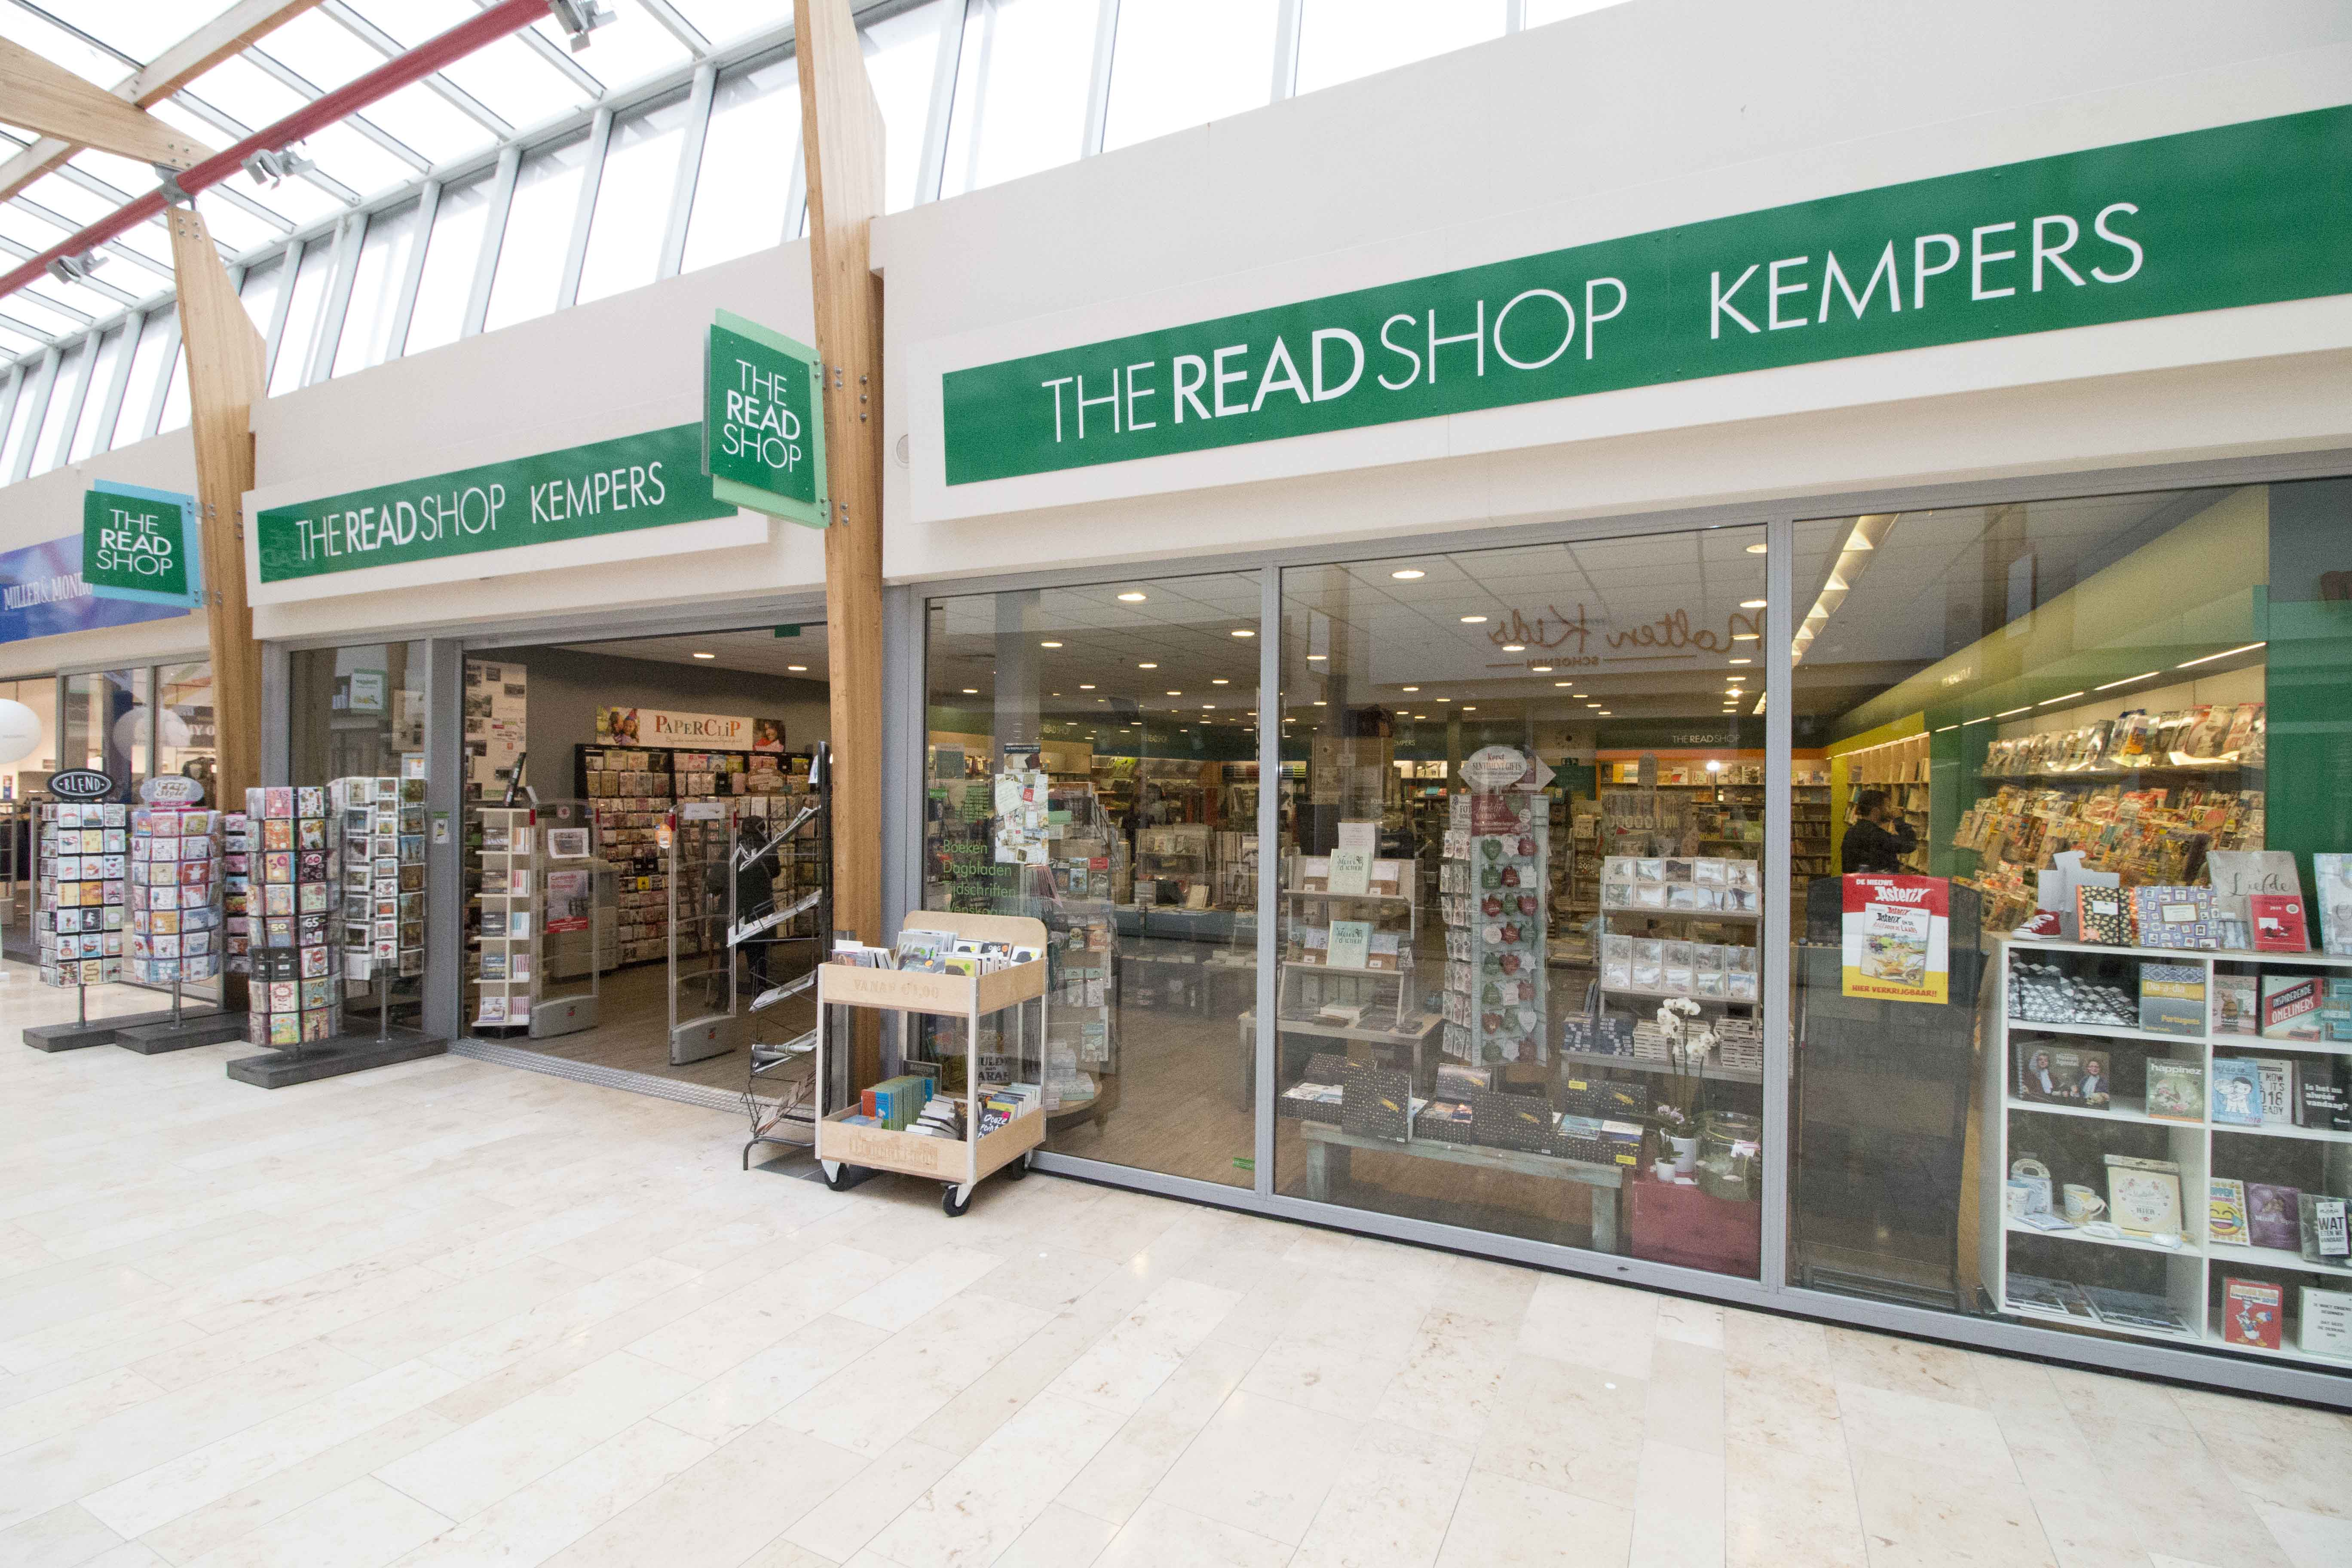 The Readshop Kempers